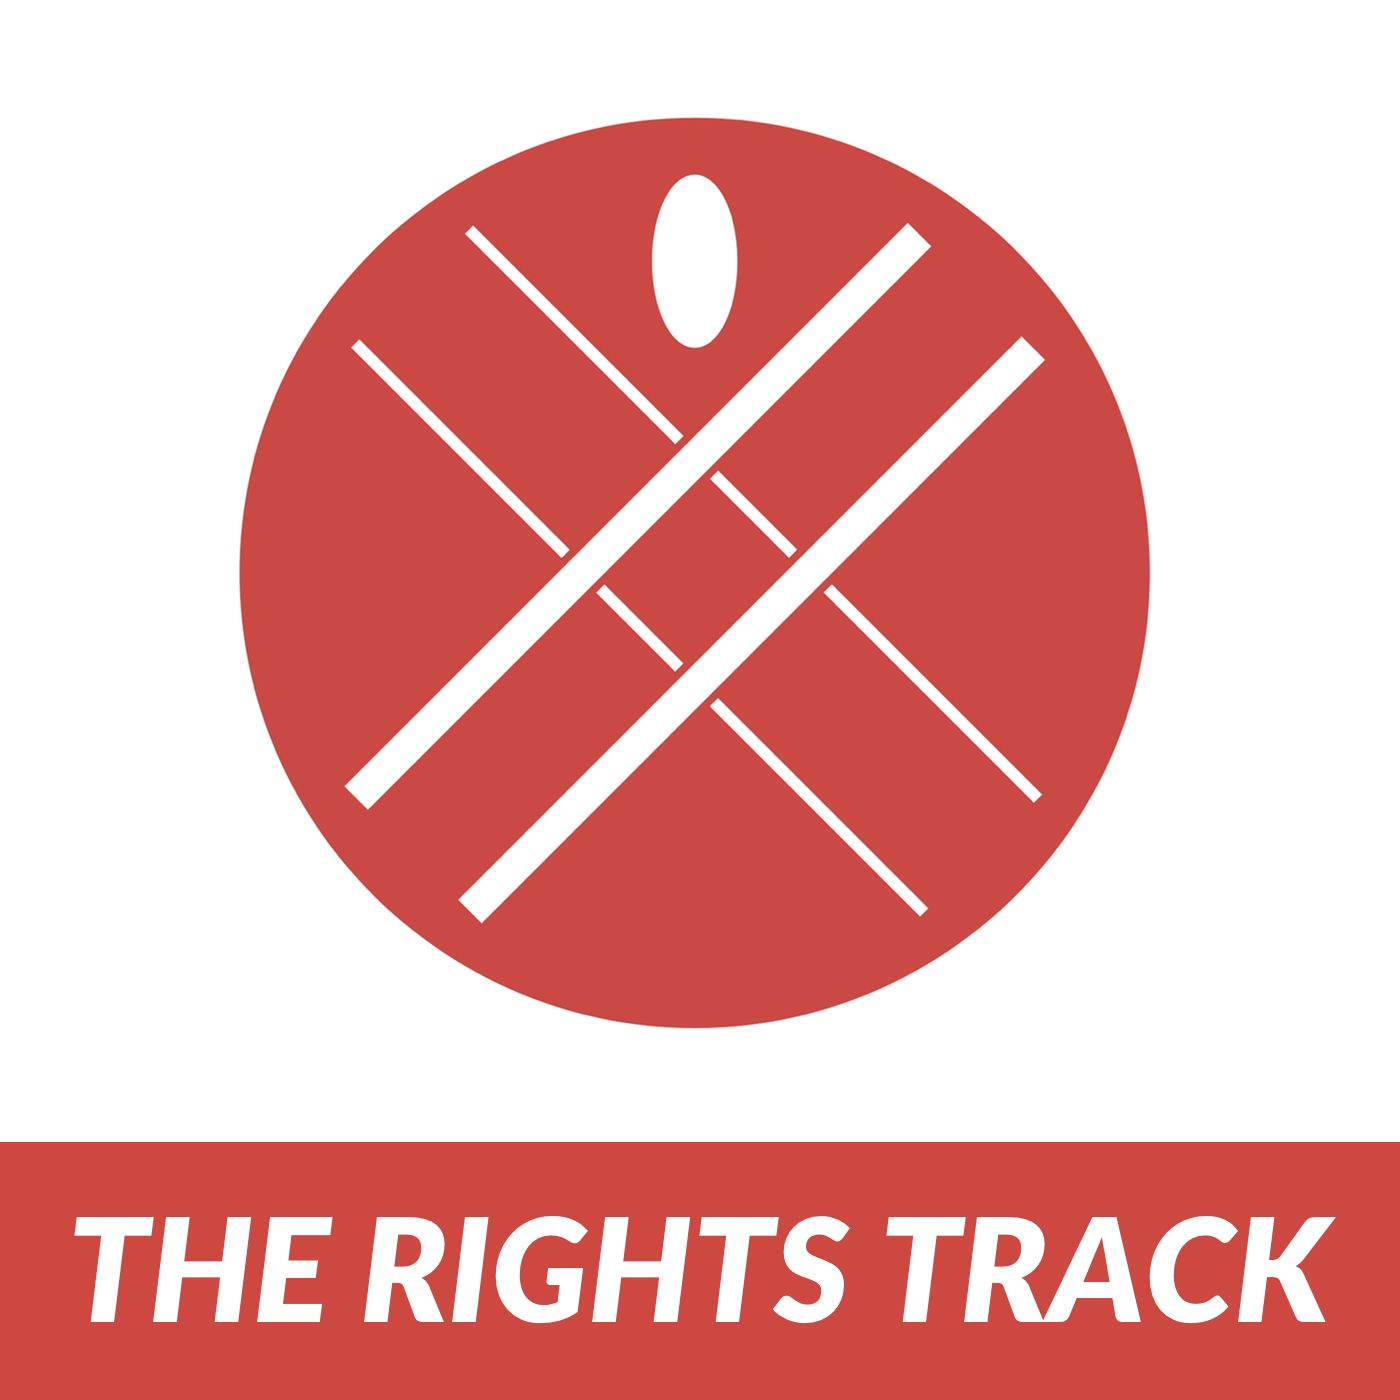 Rights Track Logo Human Rights Workers Rights Human